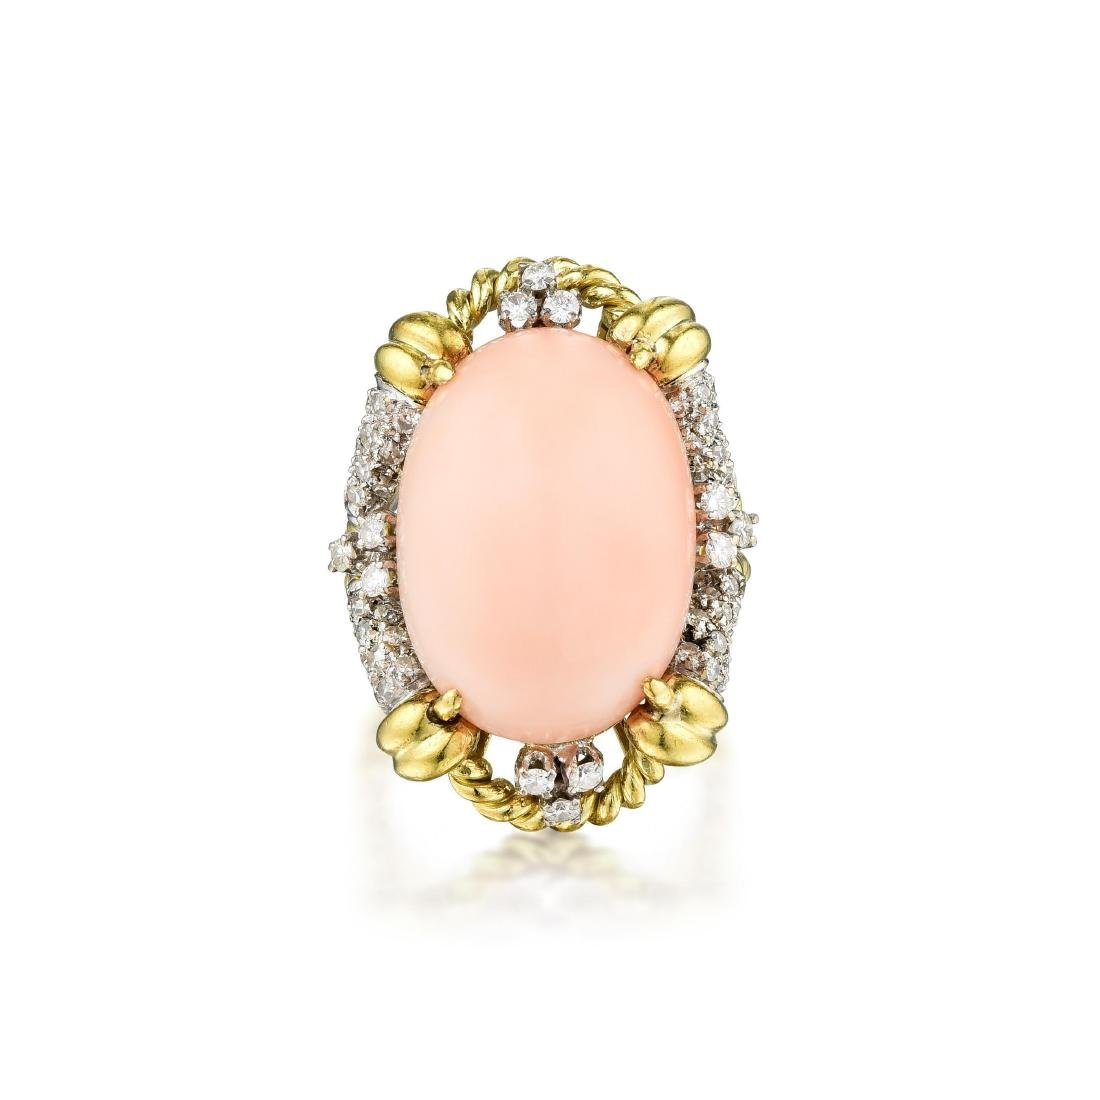 An 18K Gold Coral and Diamond Ring